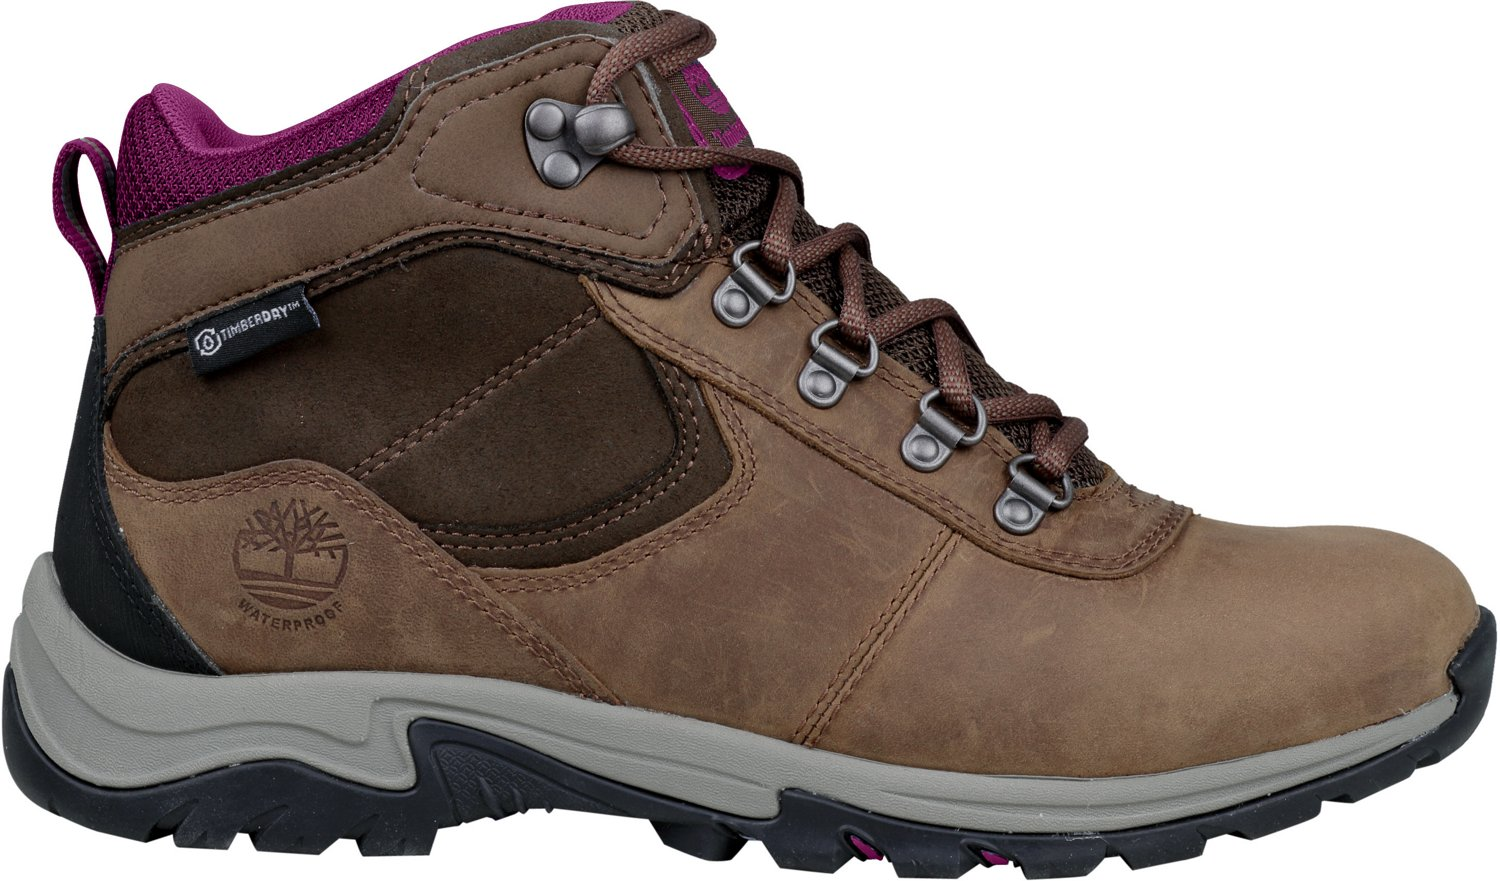 Display product reviews for Timberland Women s Mt. Maddsen Waterproof  Leather Hiking Boots a55fd2b33a